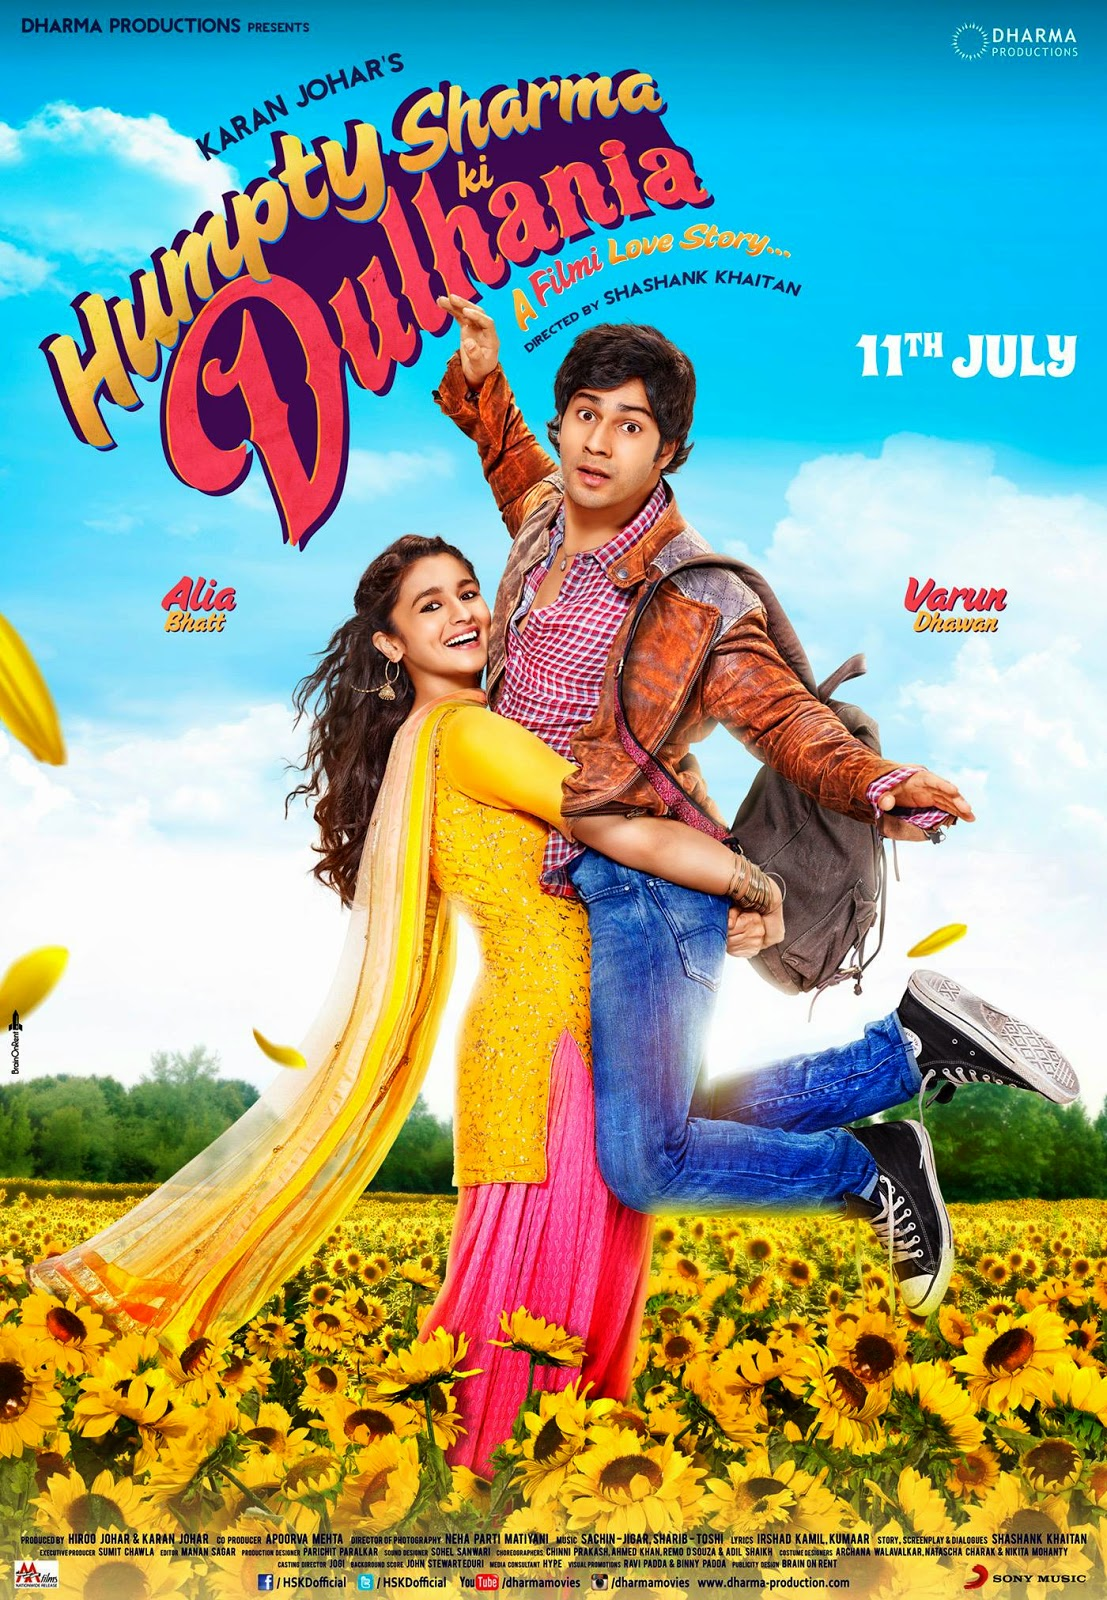 Humpty Sharma Ki Dulhania poster watch online full movie free download 2014.